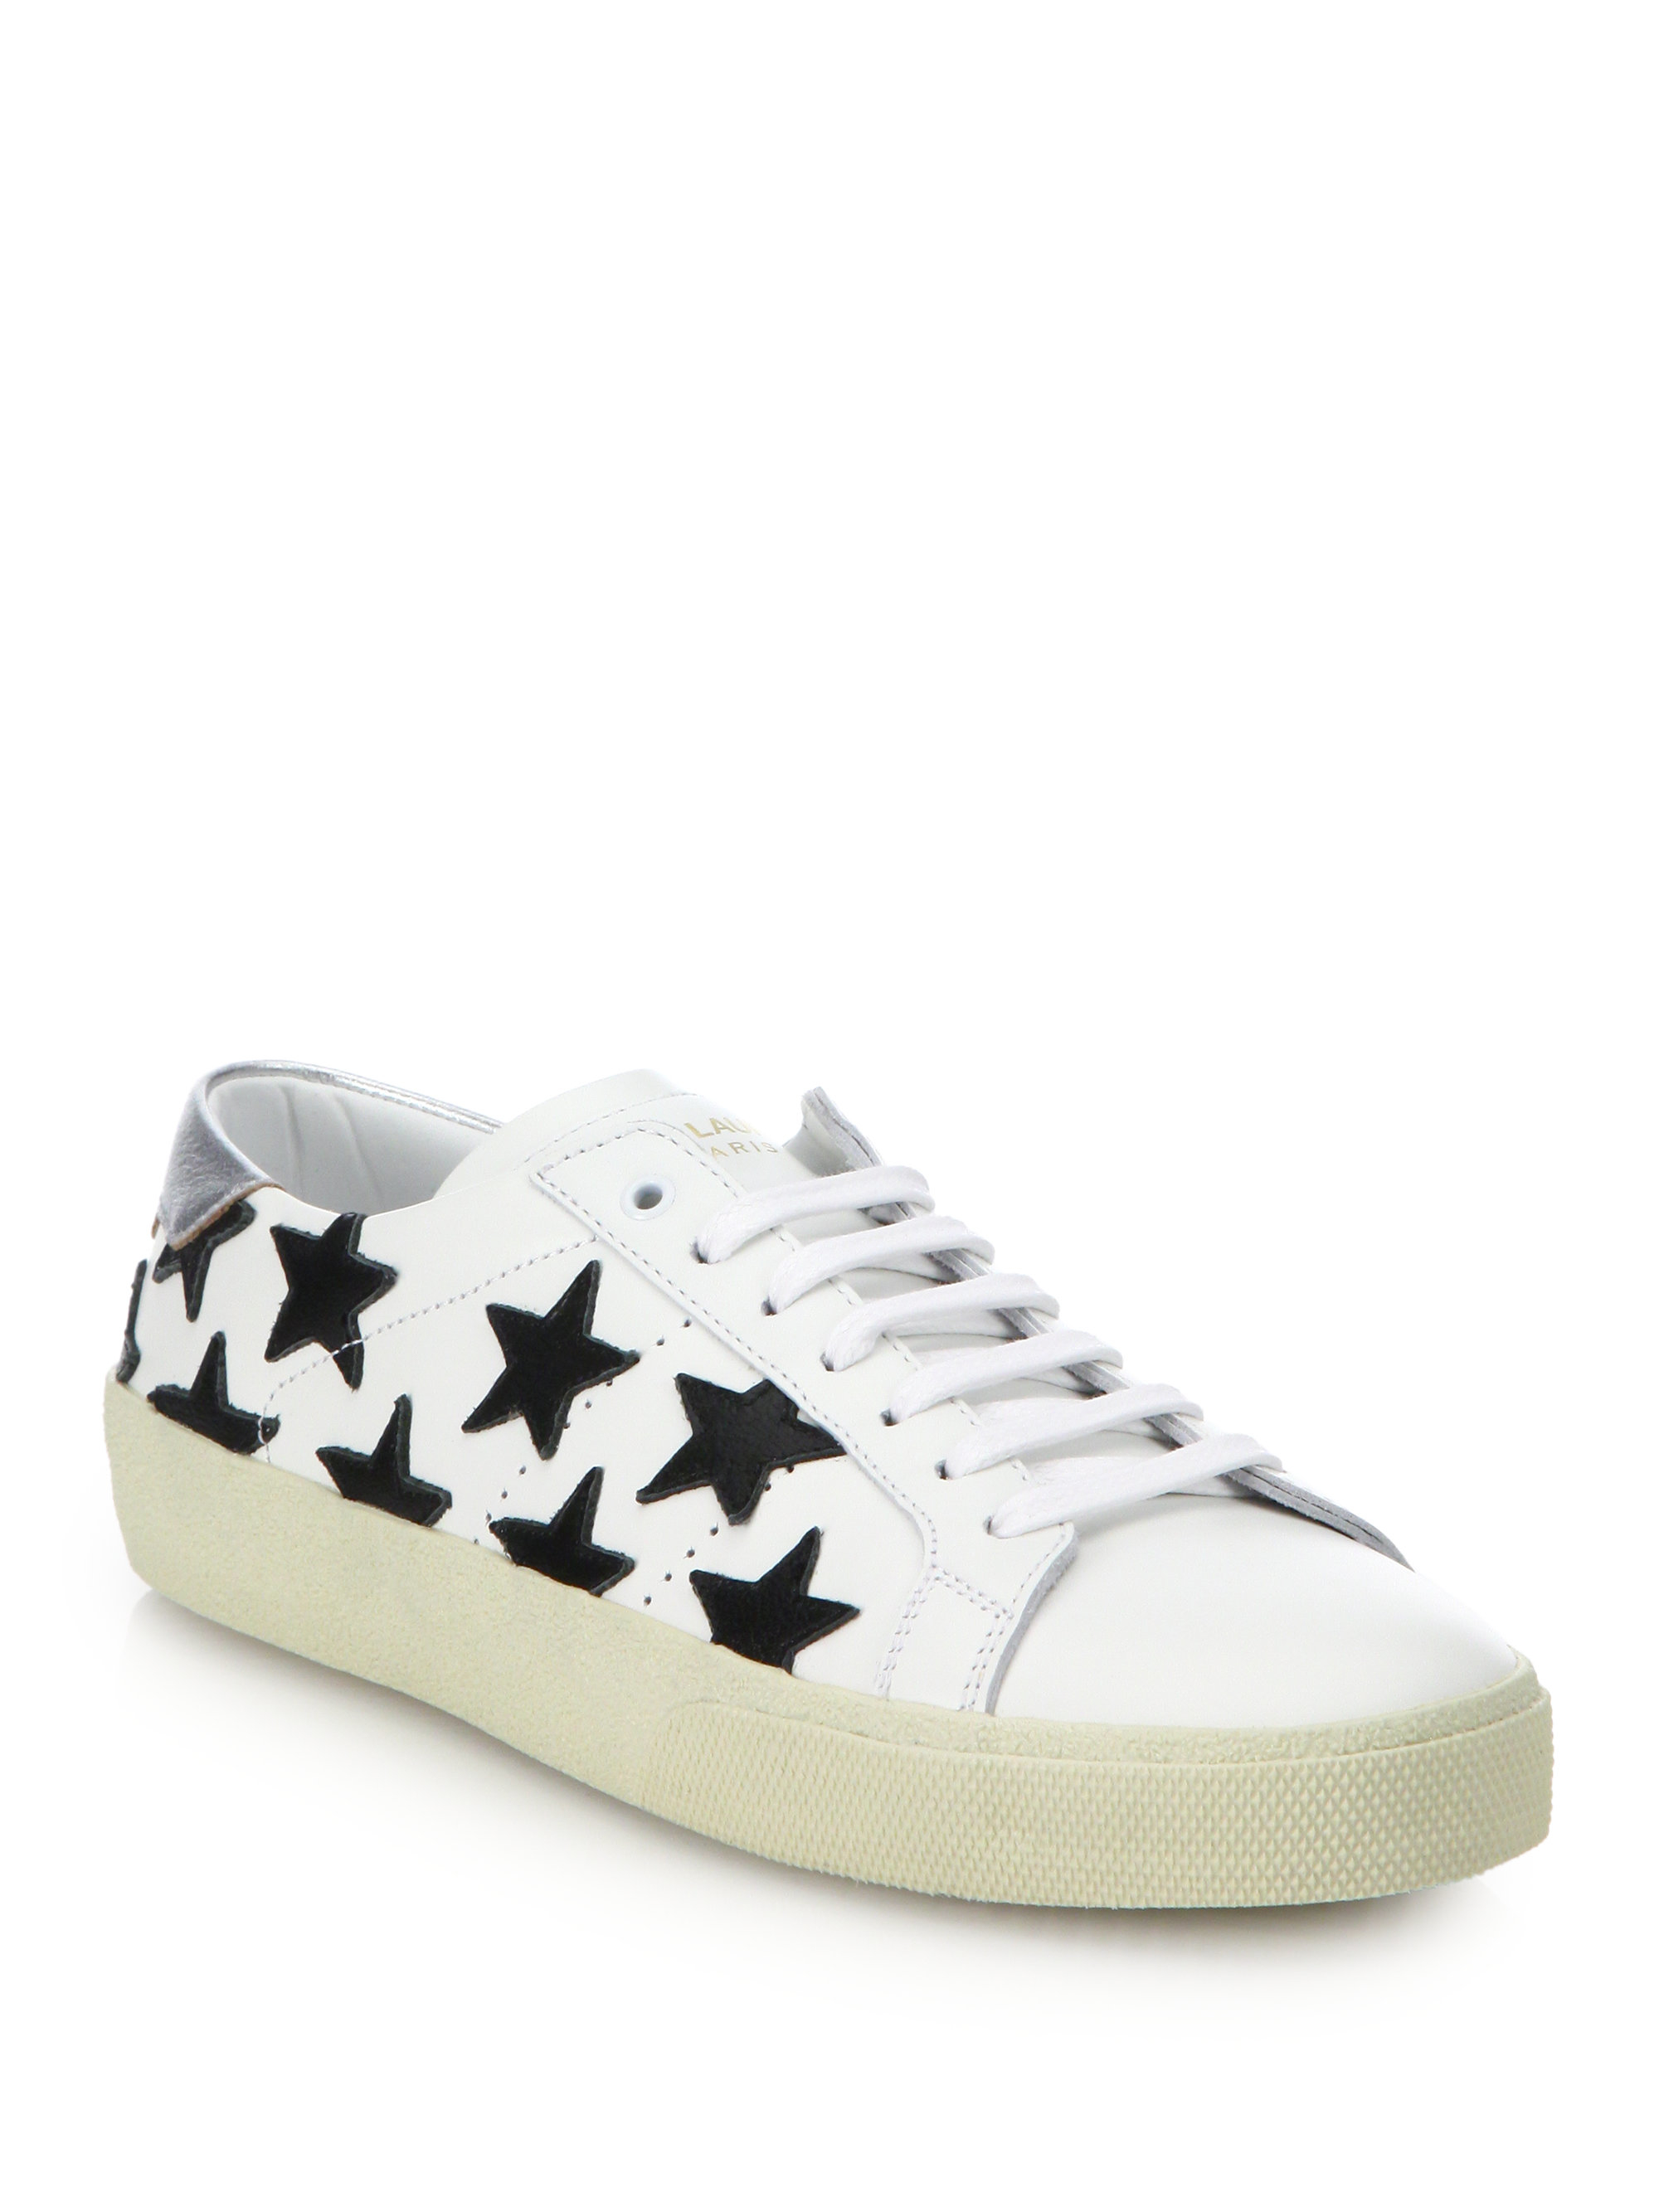 saint laurent star leather lace up sneakers in white lyst. Black Bedroom Furniture Sets. Home Design Ideas